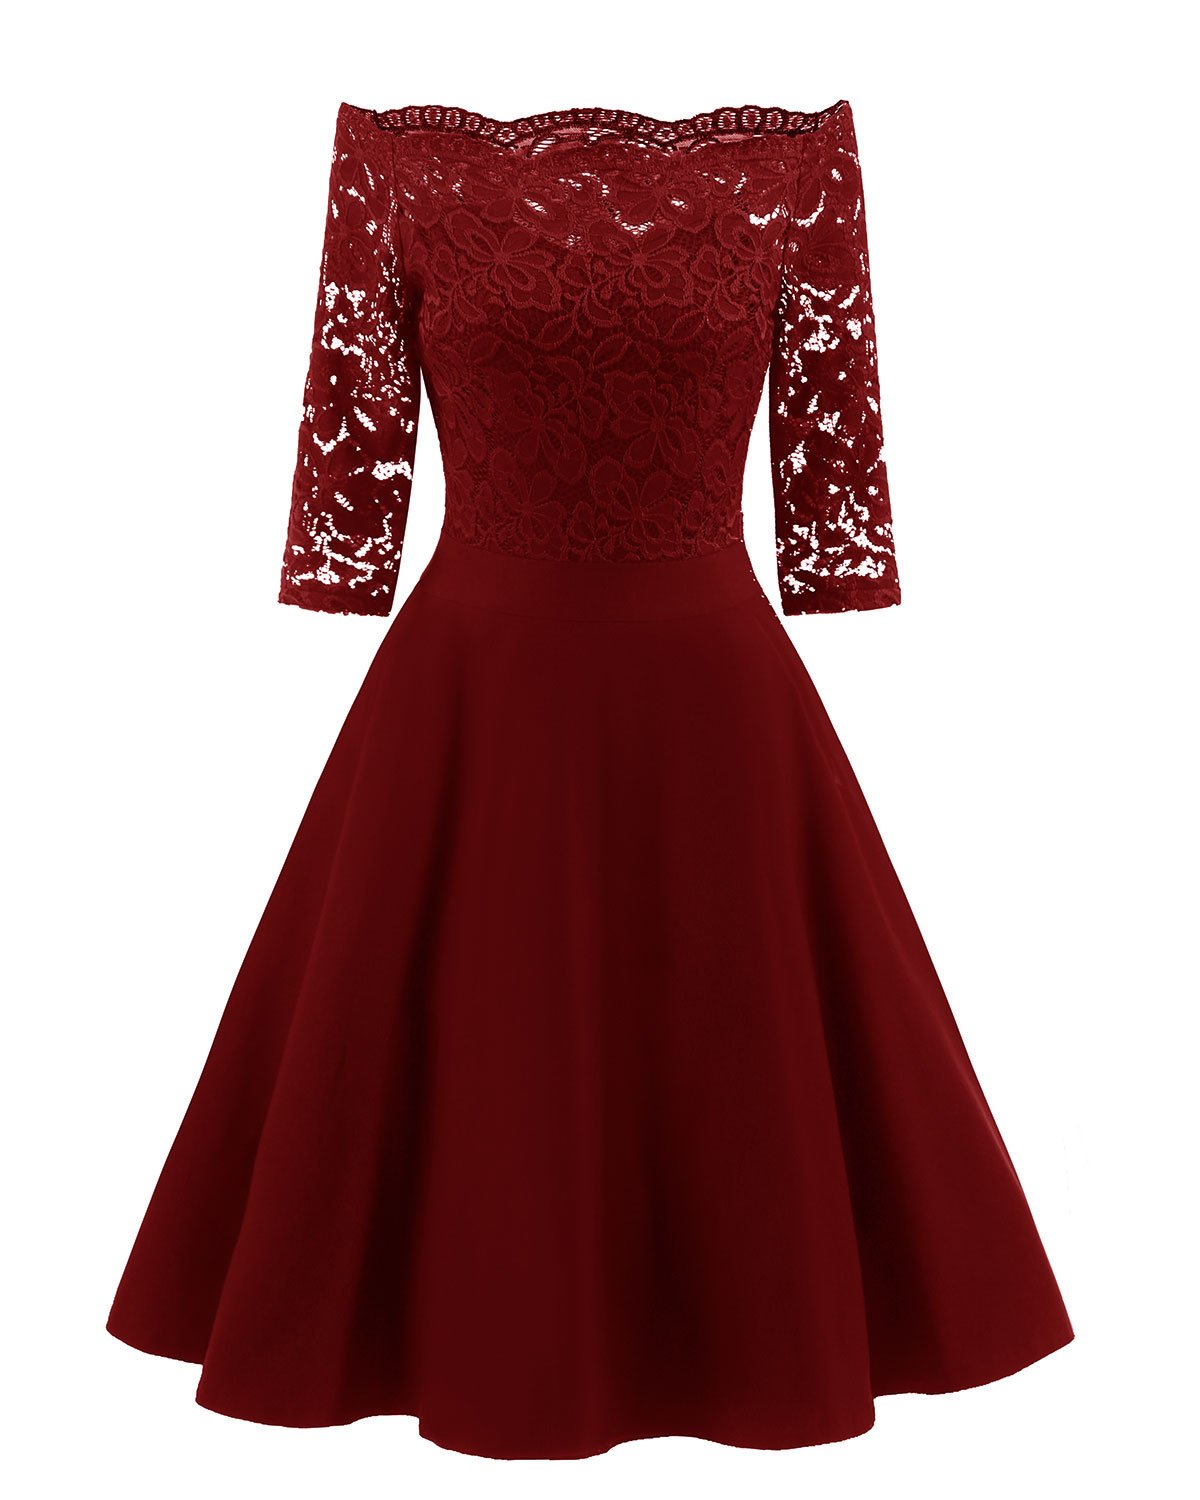 Size Plus junior dresses cheap pictures recommend to wear for on every day in 2019